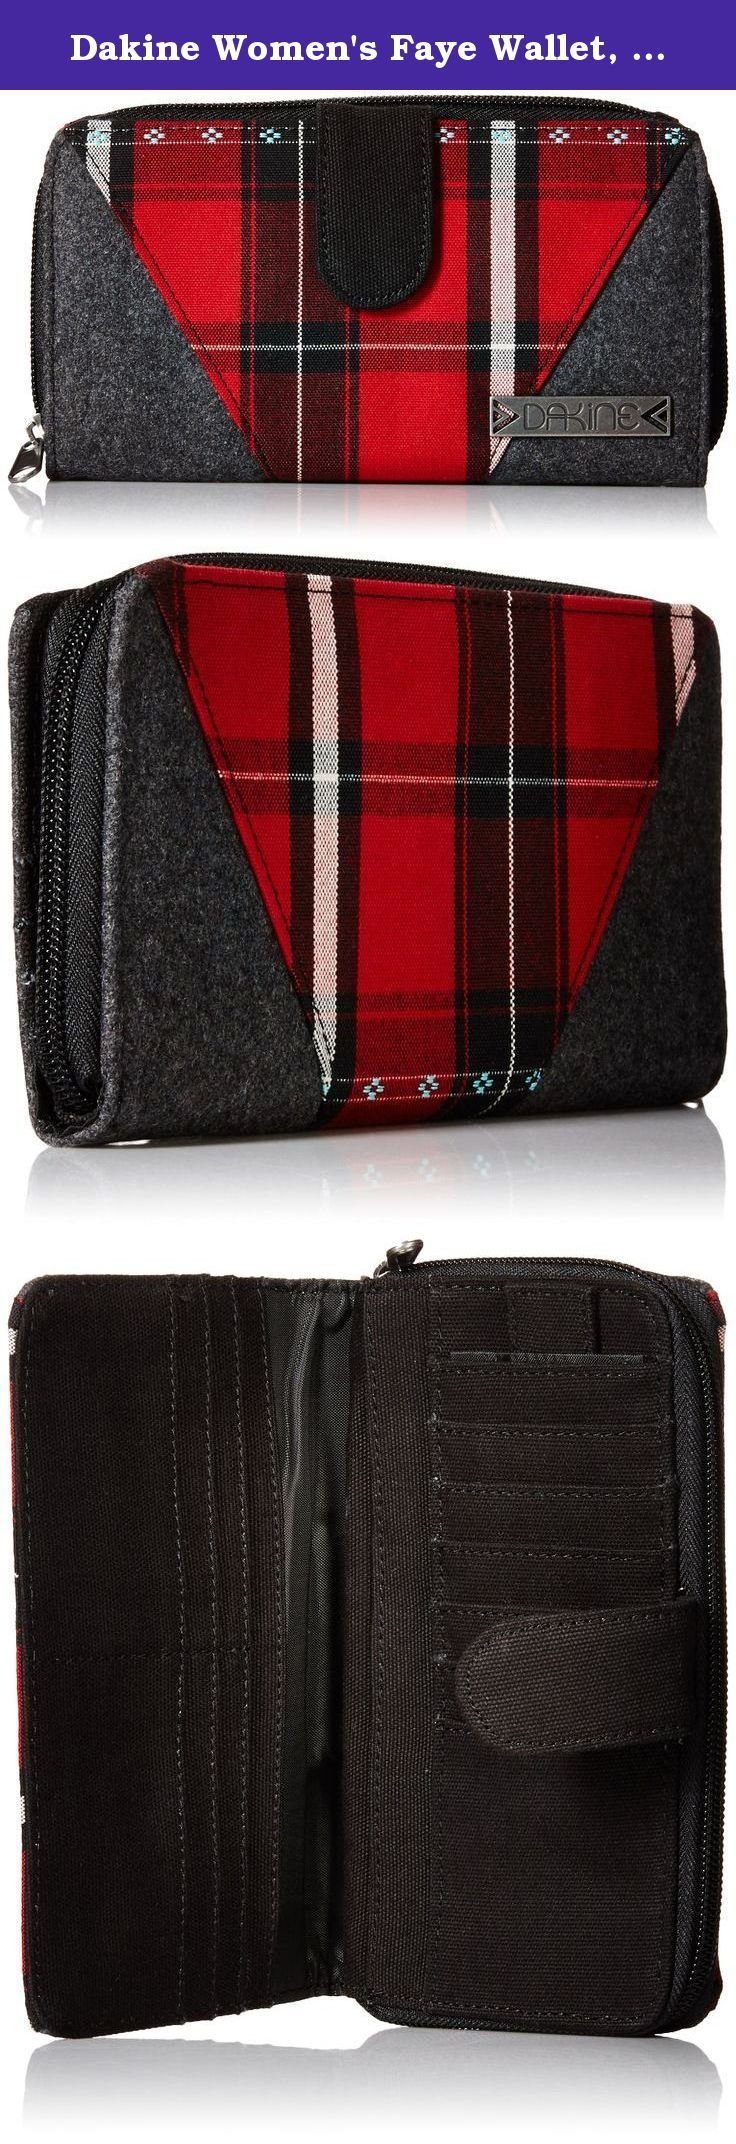 Dakine Women's Faye Wallet, Sedona. Dakine women's wallet - in Hawaiian slang, Da Kine means the best and the company has lived up to this standard through attention to detail, focus on accessories and a notoriously thorough design process.